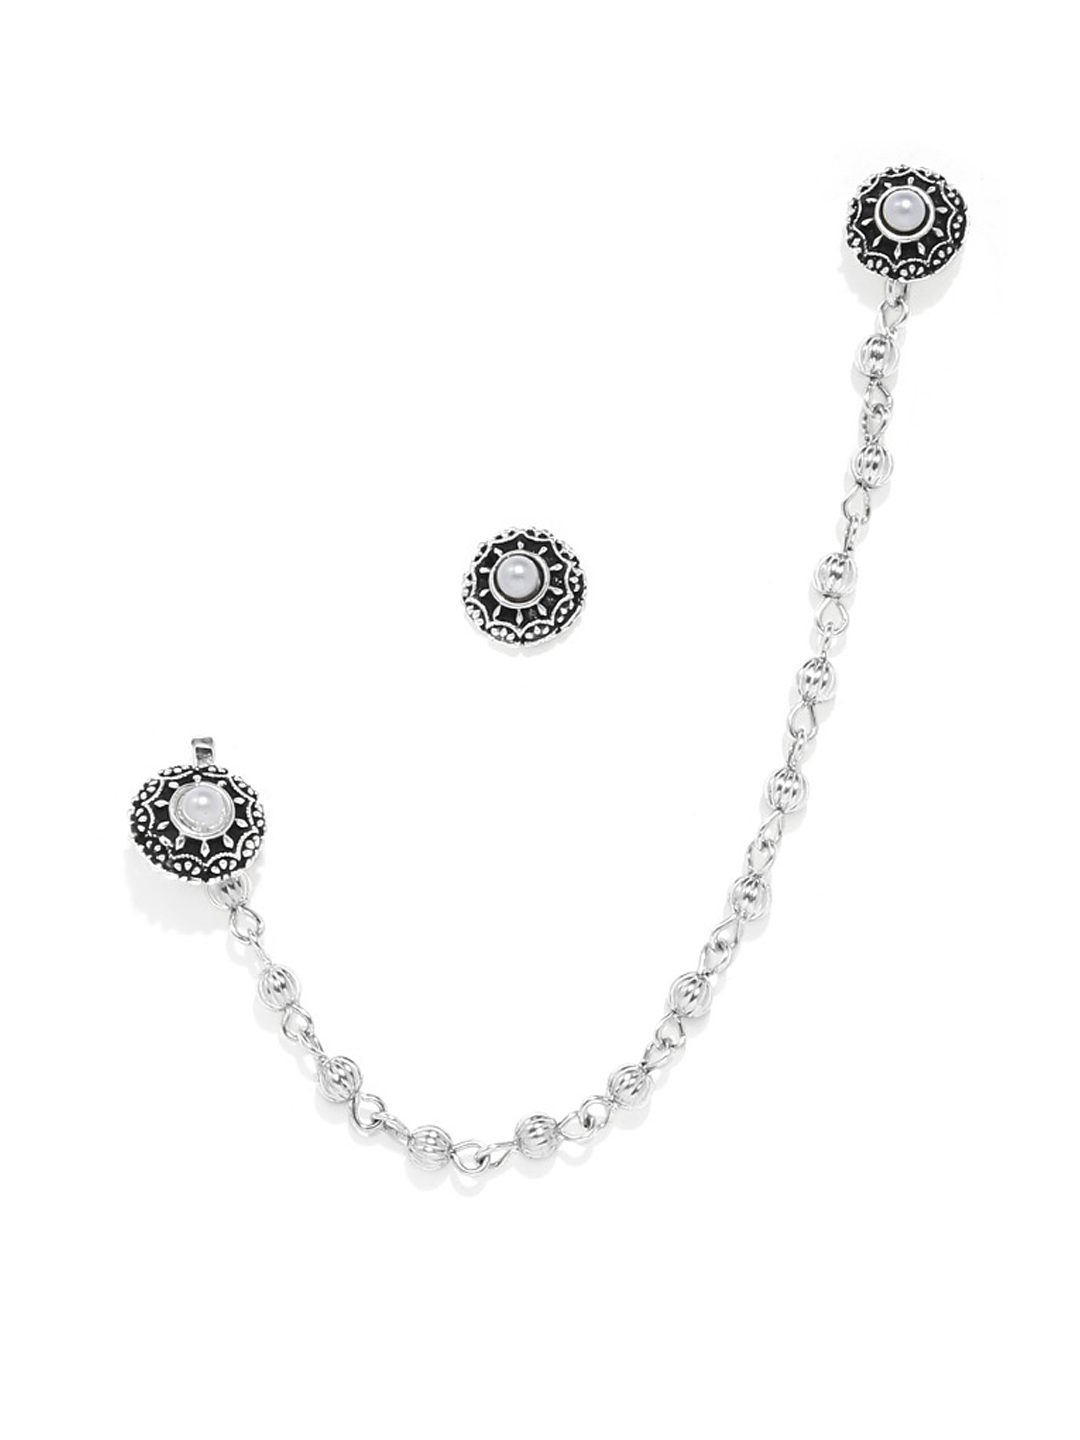 Buy Zaveri Pearls Silver Toned Nose Pin Chain With Earrings Nosepin For Women 6941203 Myntra